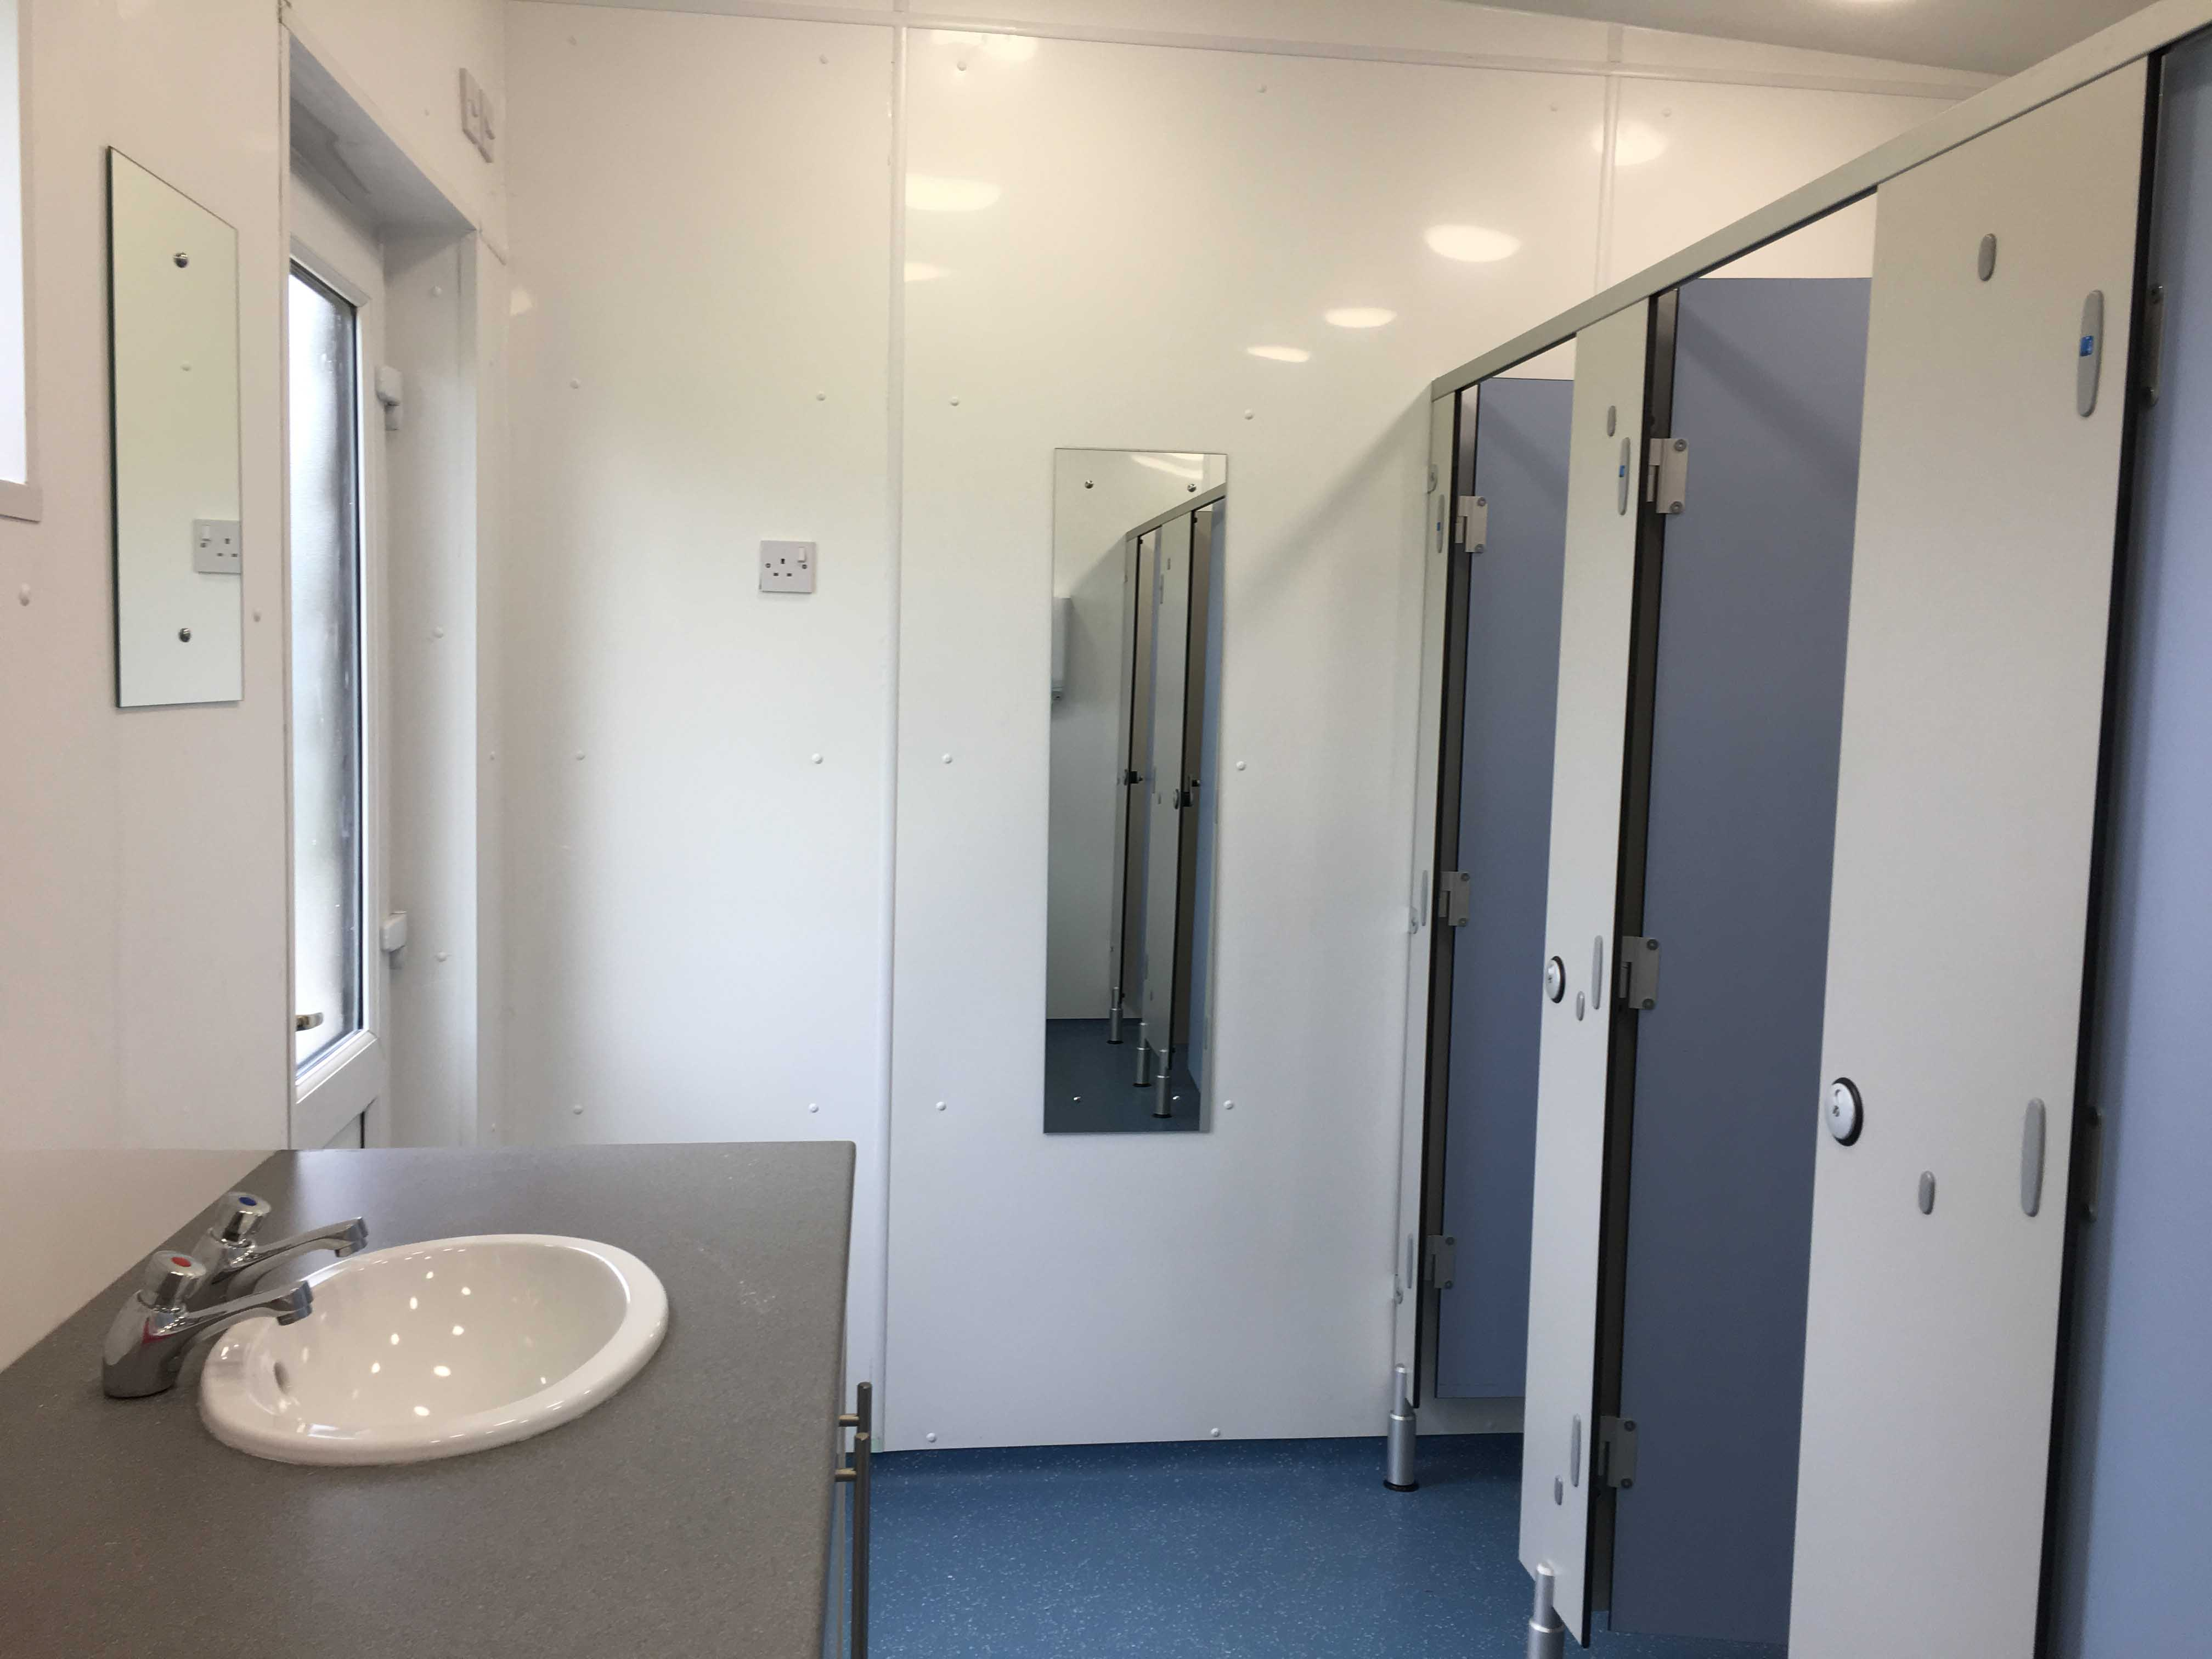 Pitch and Canvas | Glamping and Camping in Cheshire | Toilet block inside